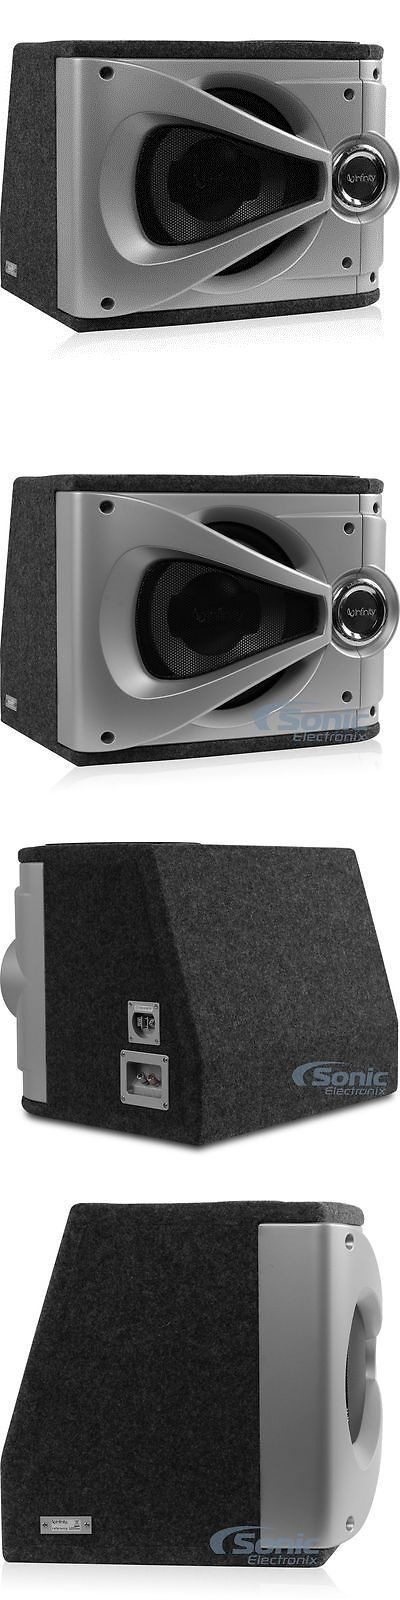 Car Subwoofers: Infinity Reference 1262W Loaded In Subwoofer Enclosure 12 300W Rms (1220Se) BUY IT NOW ONLY: $119.99